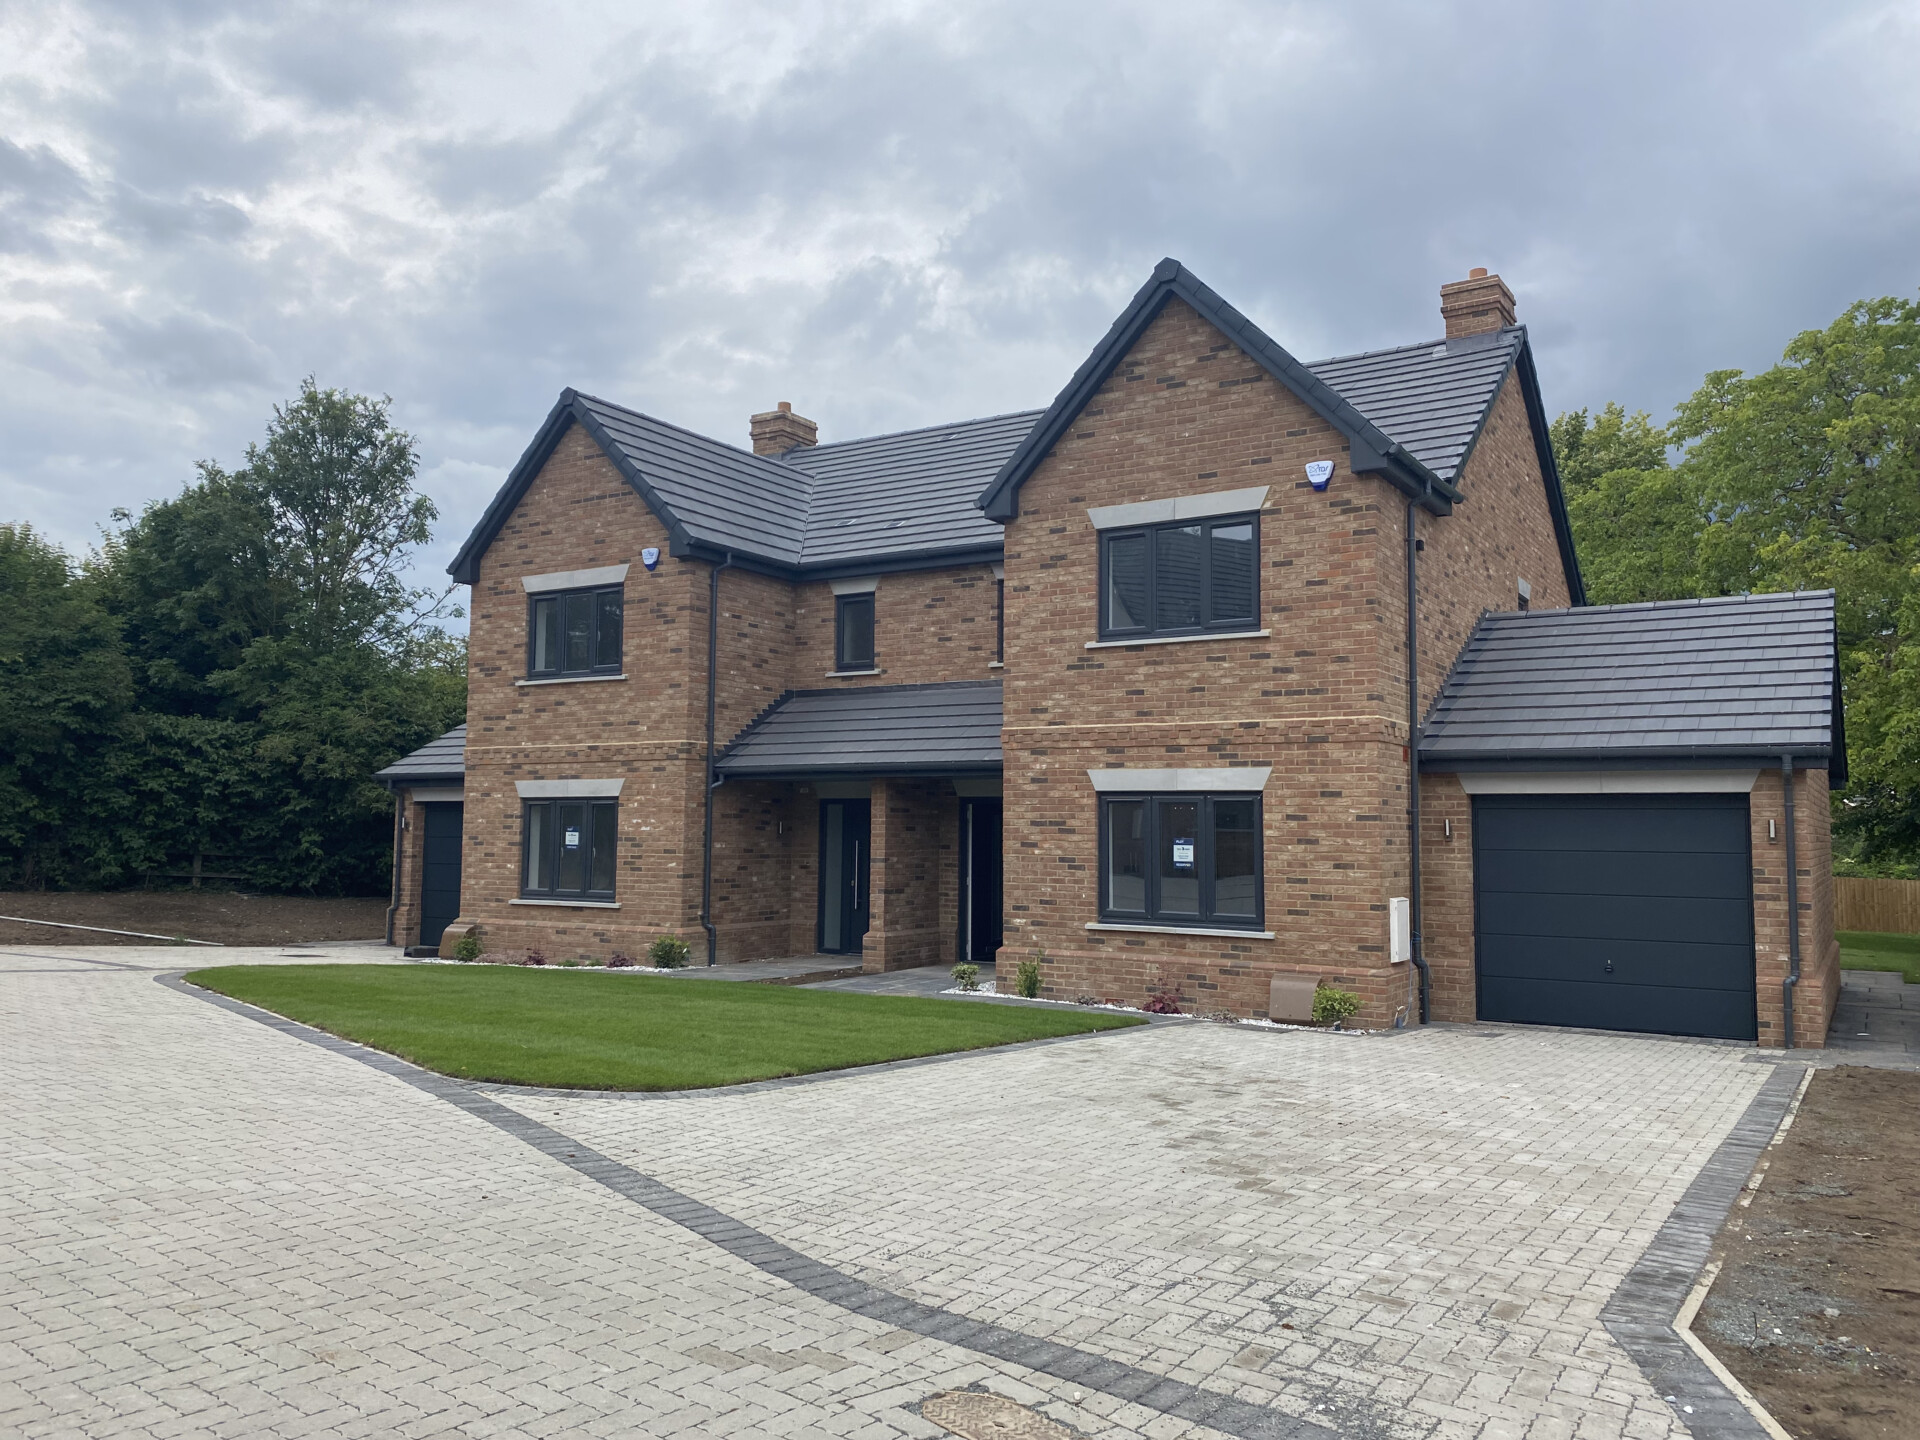 Plot 4 Townsend Meadows Ashwell SG7 5LS – Four bedroom detached home is desirable Hertfordshire village